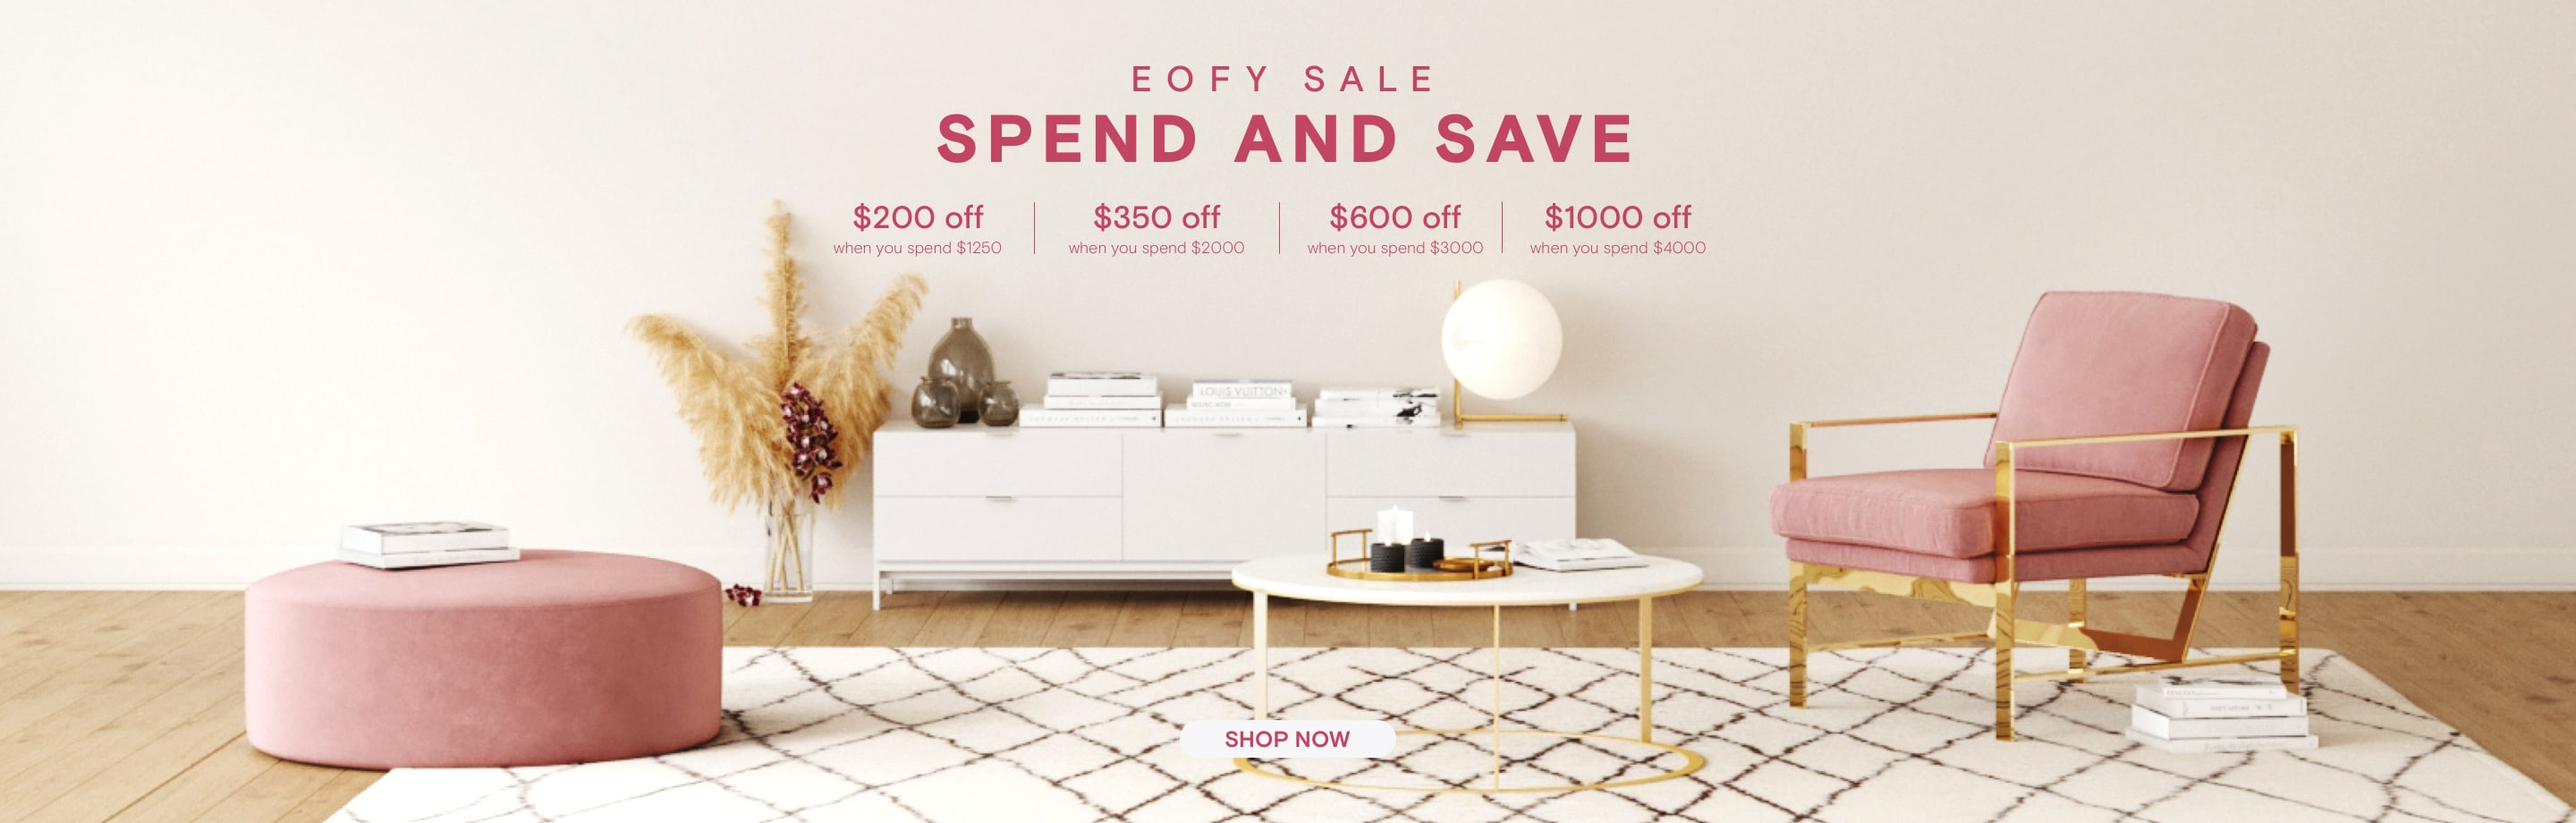 eofy-sale-spend-save